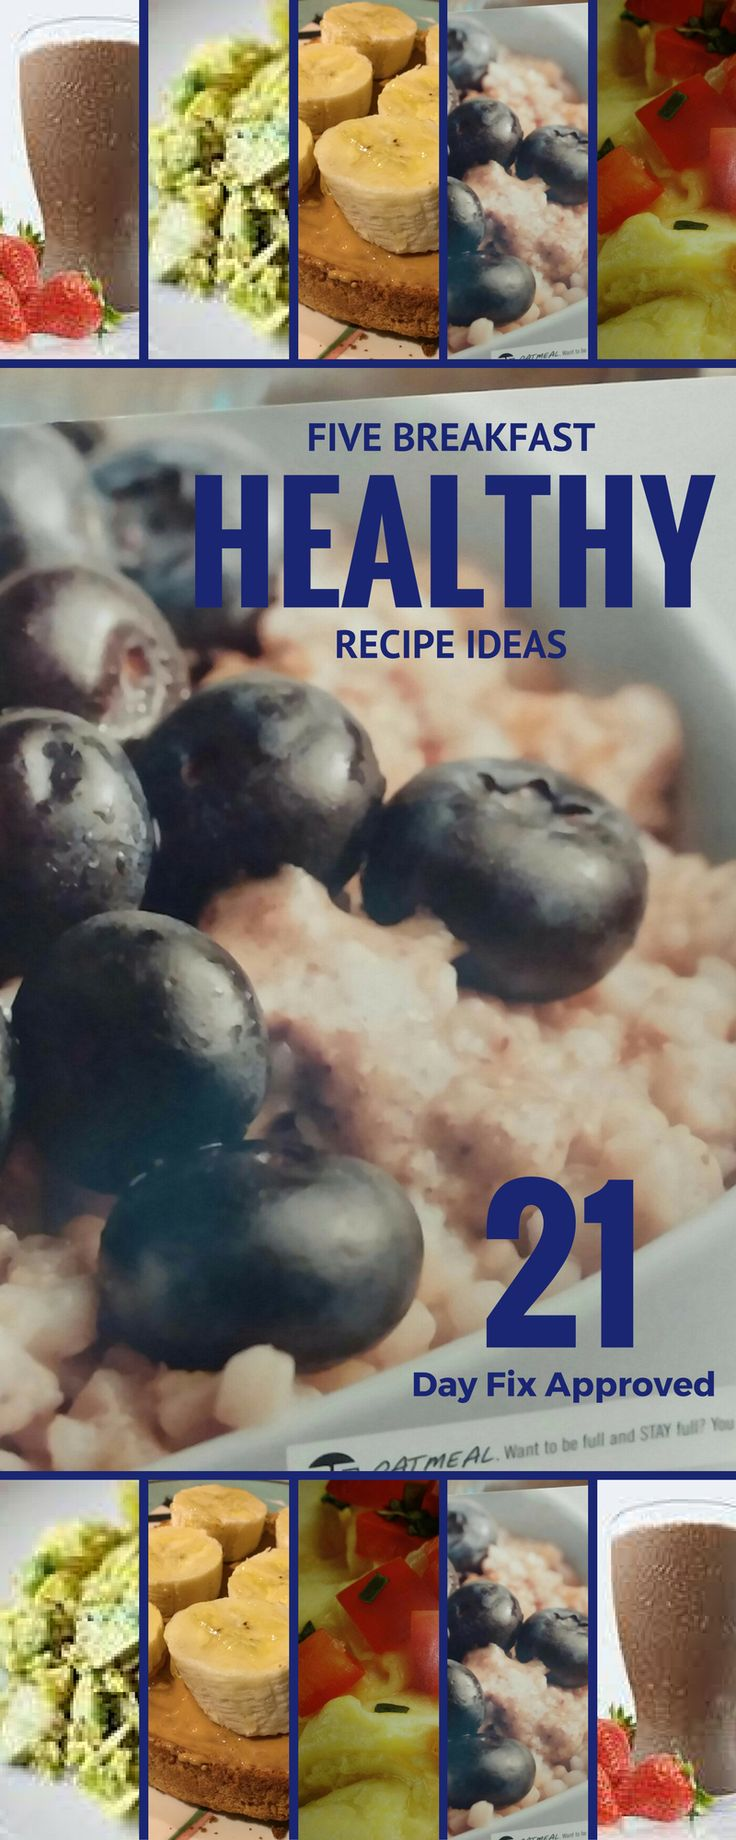 Get FIVE healthy breakfast recipes - All 21 Day Fix Approved!  Need help with your meal planning?  This is a good place to start!  Get your 5 day meal plan here!